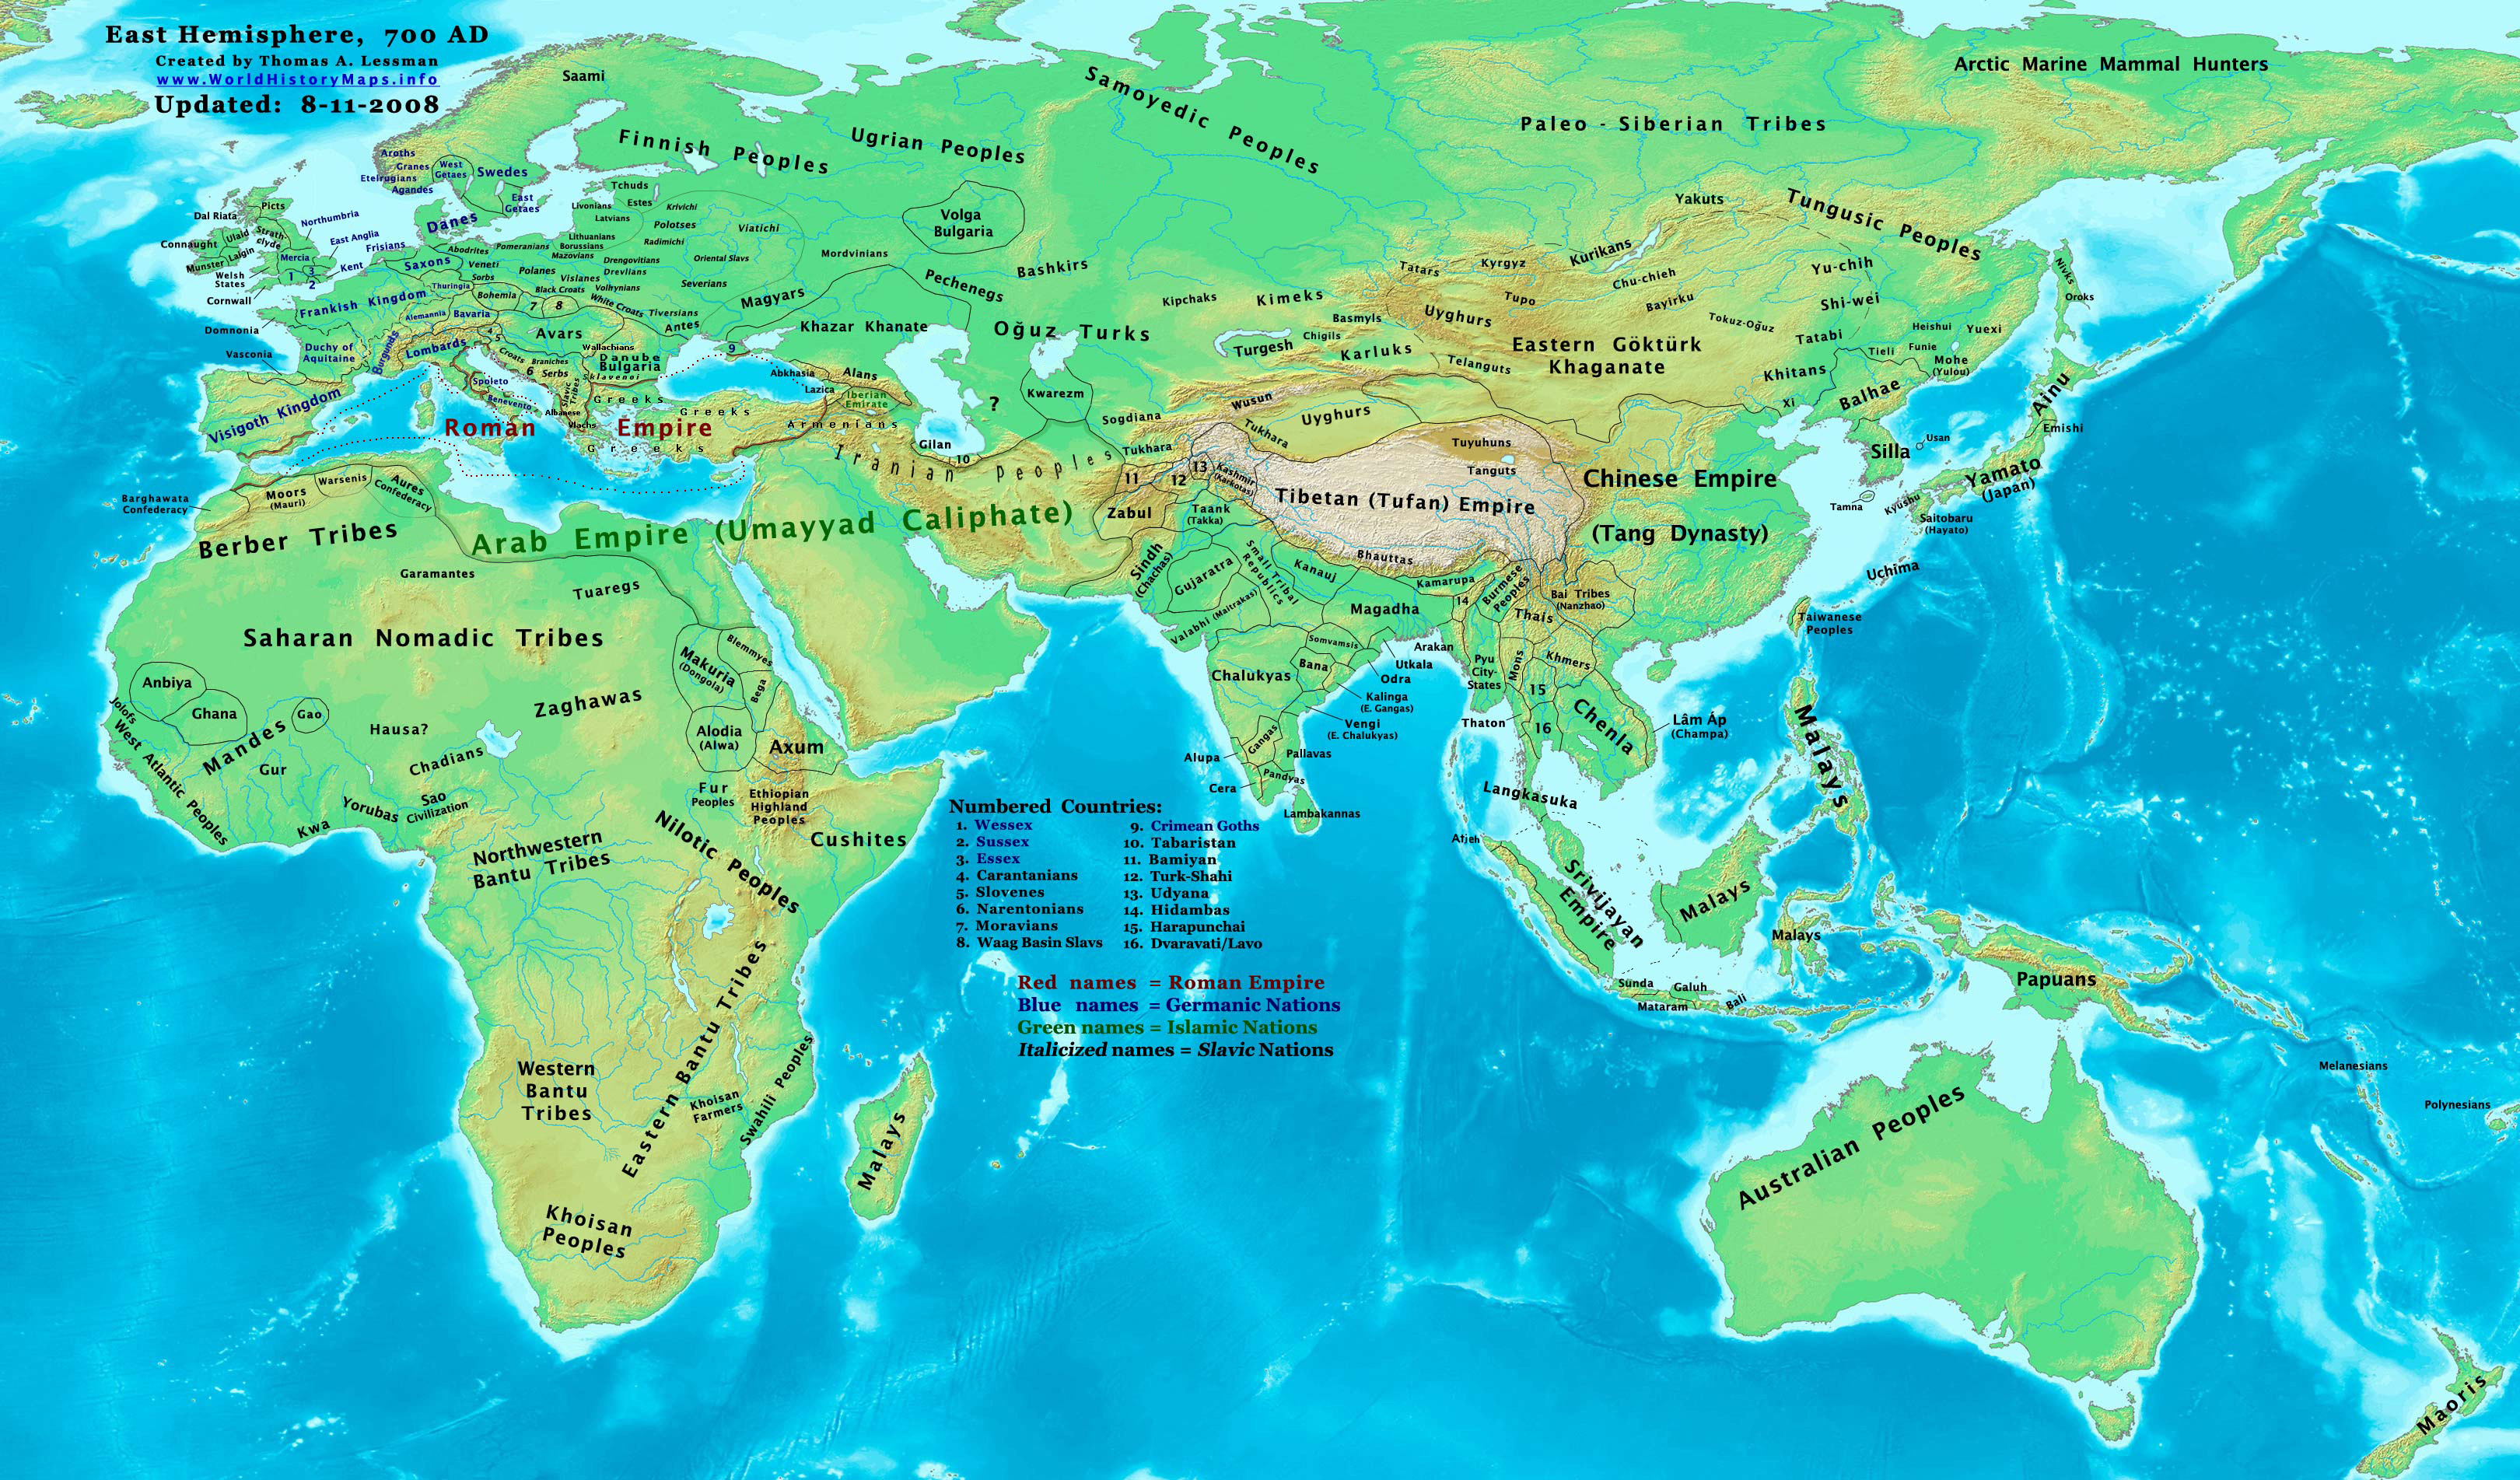 Map of the 8th-century world from Wikimedia Commons